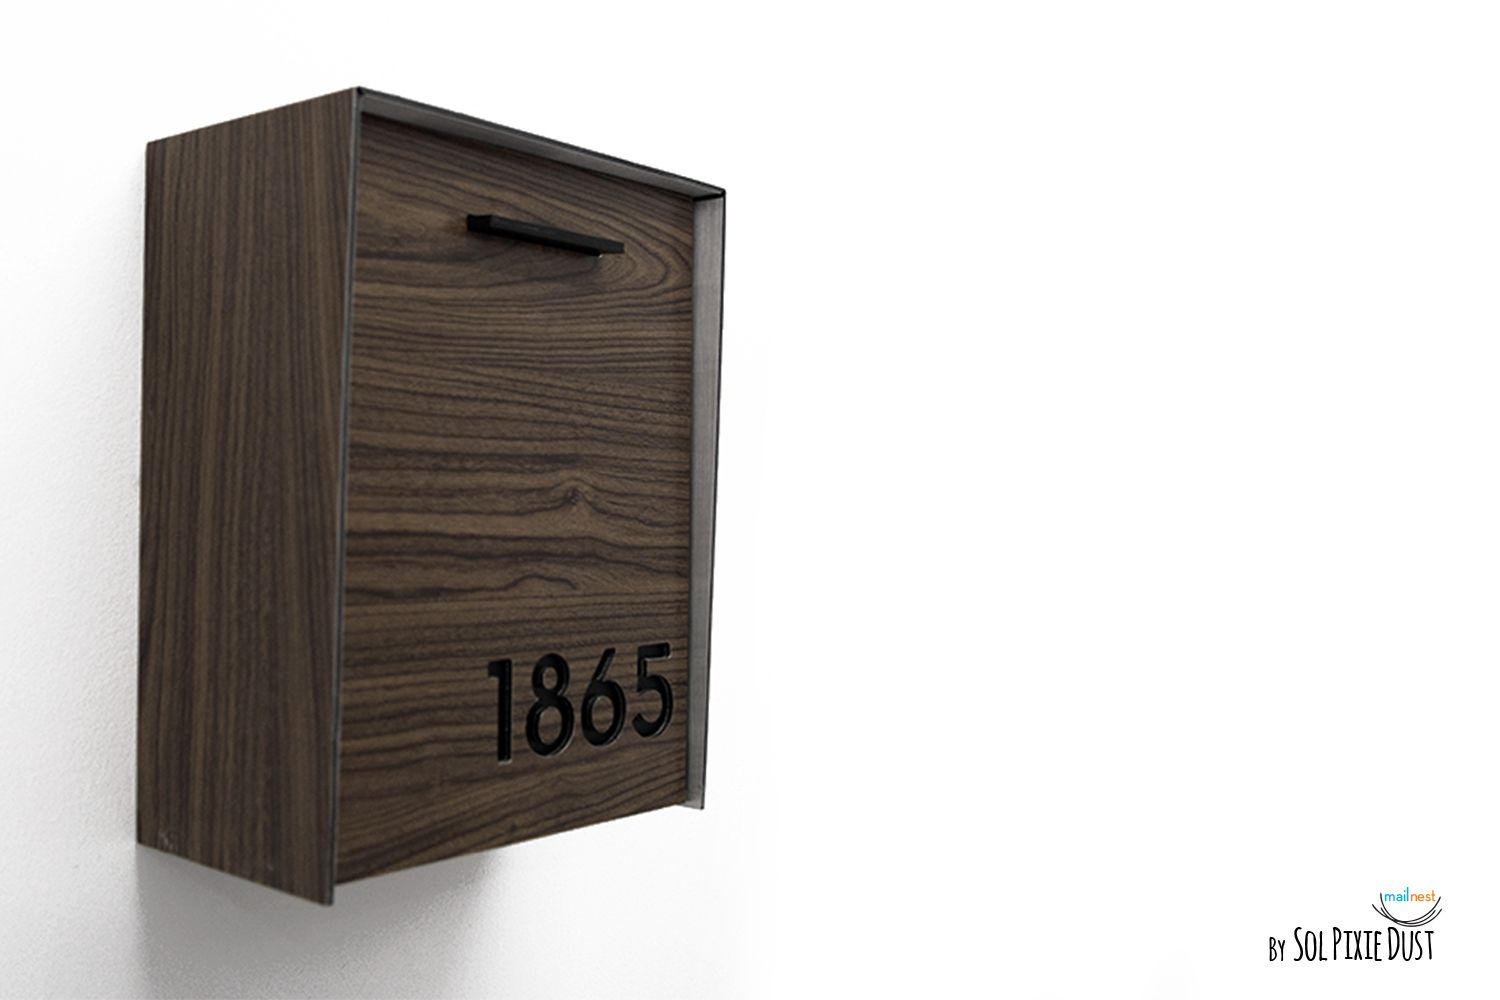 Modern Mailbox With Wood Walnut Aluminum Face And Body And Etsy In 2020 Mounted Mailbox Wall Mount Mailbox Modern Mailbox